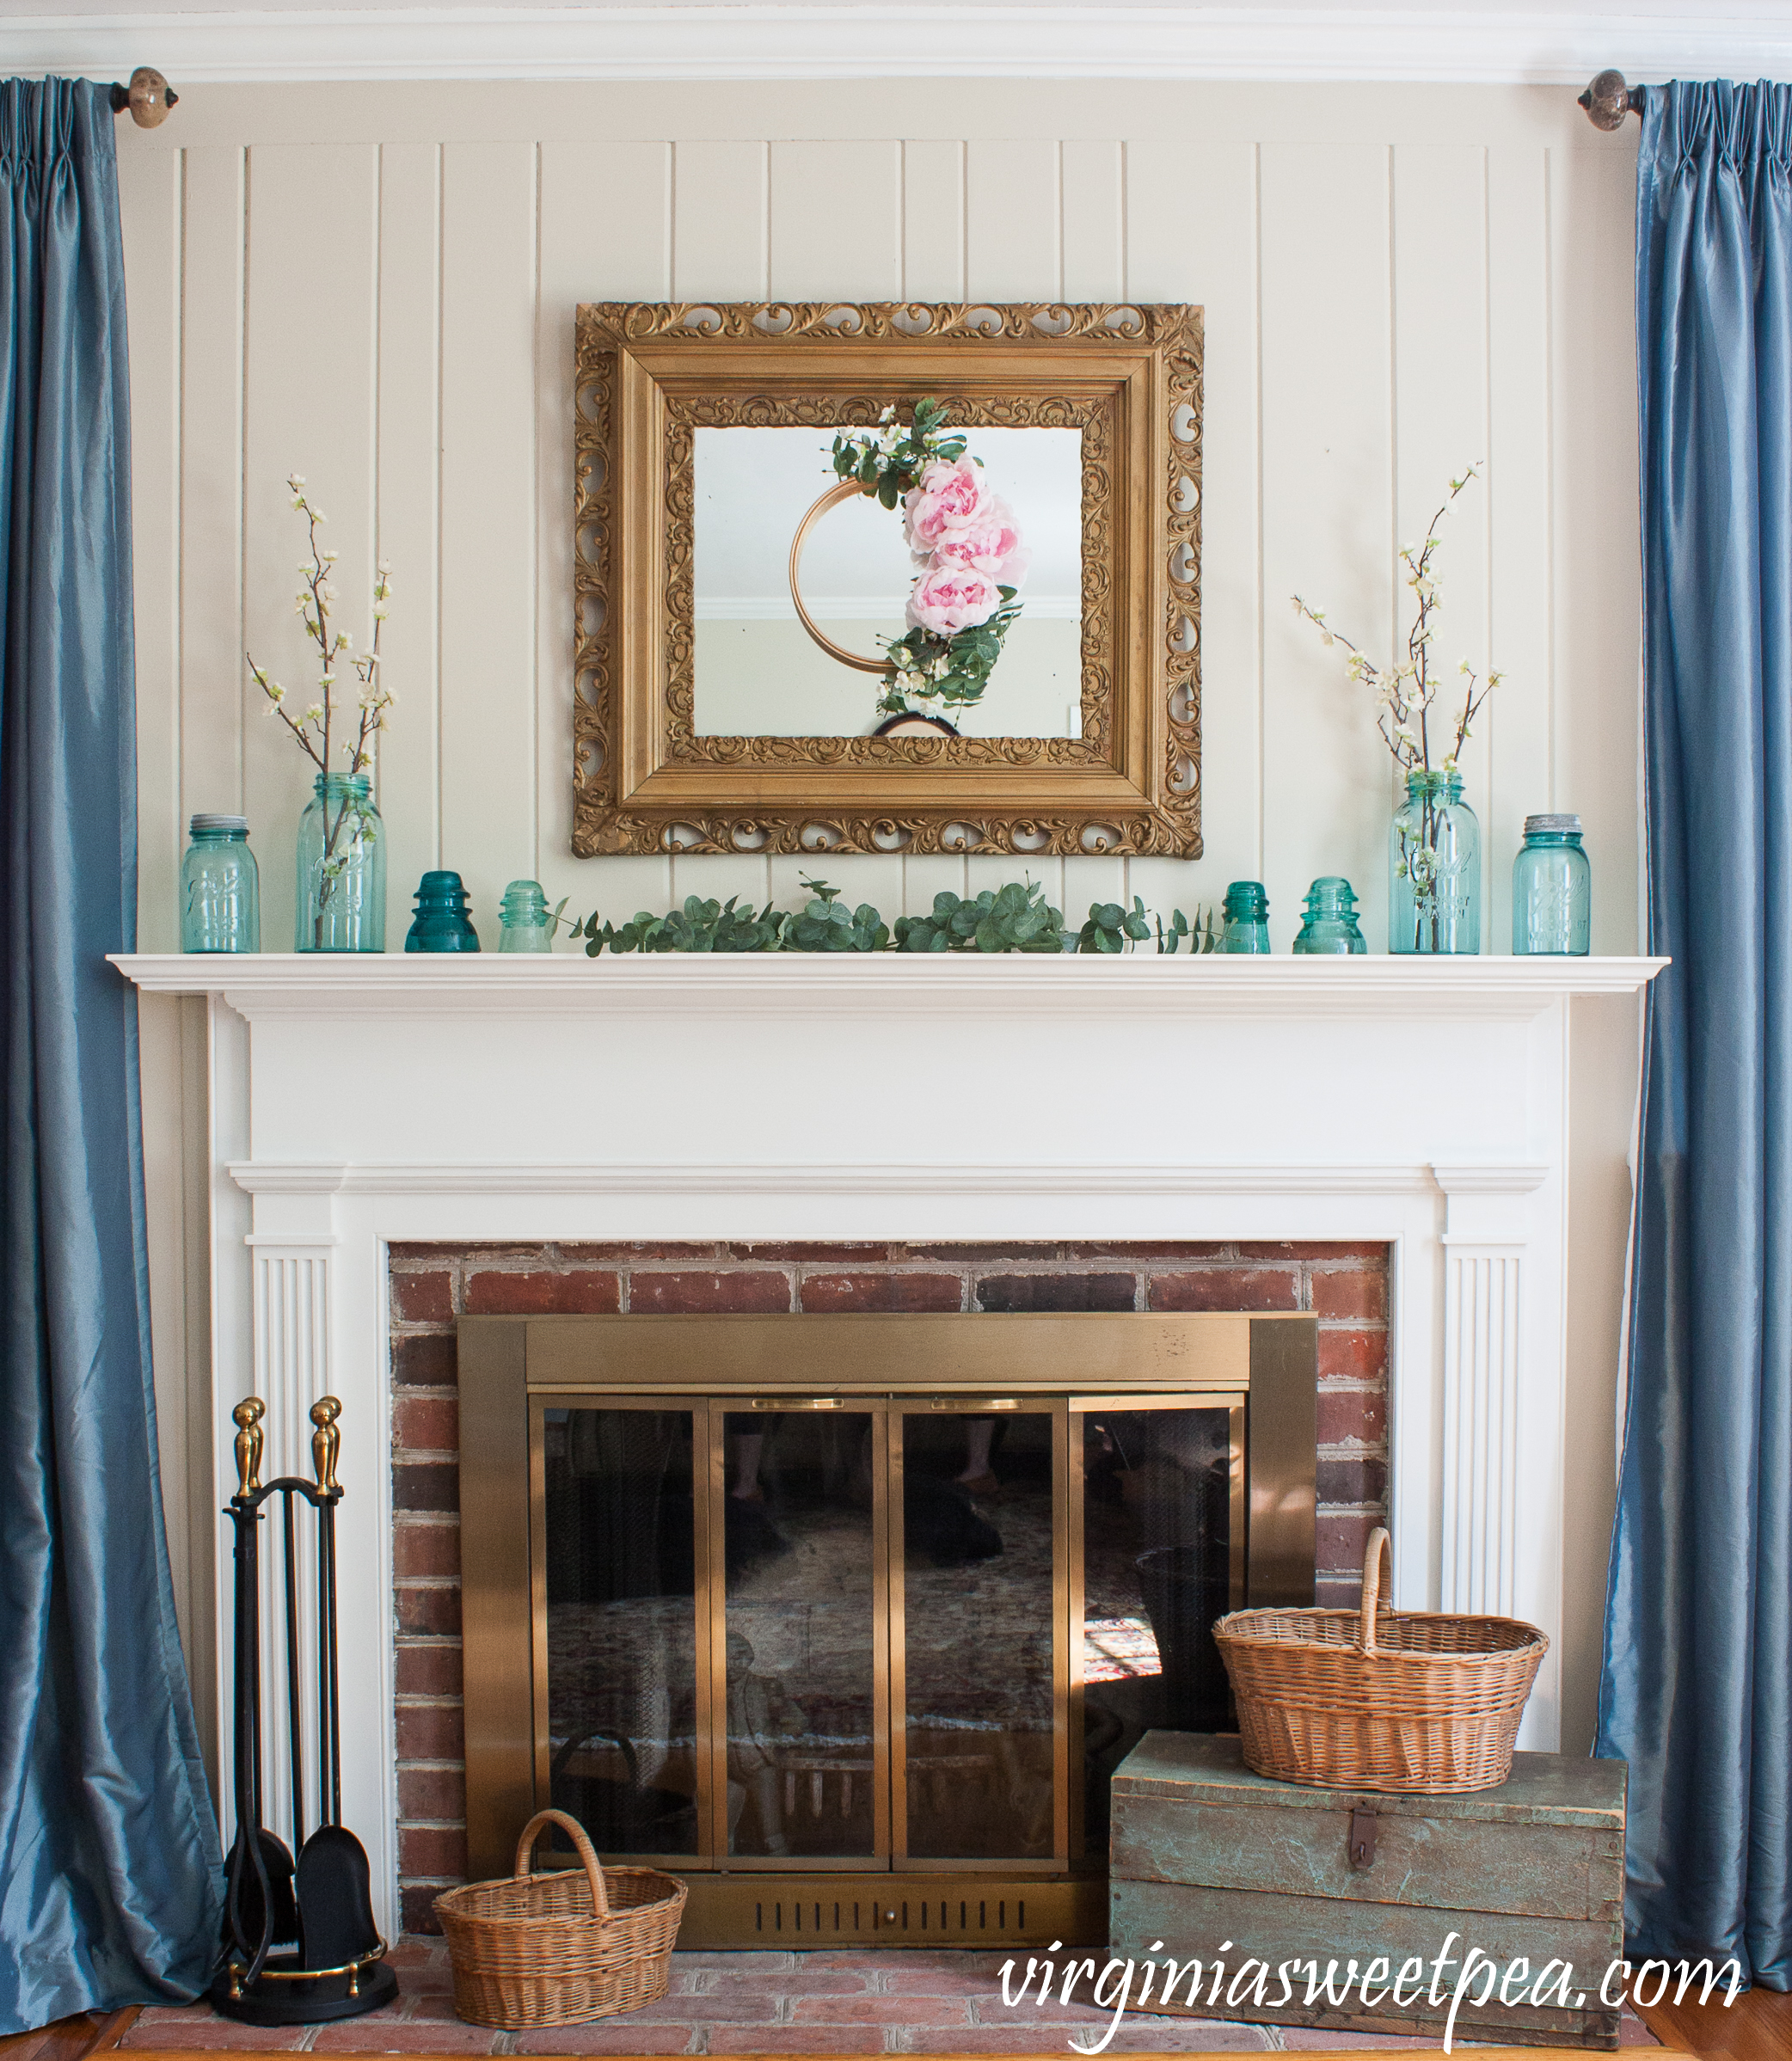 Spring Mantel with Vintage blue Ball Jars, Insulators, and Baskets - #springmantel #springdecor #vintagedecor #vintage #antiquebaskets #vintageddecor